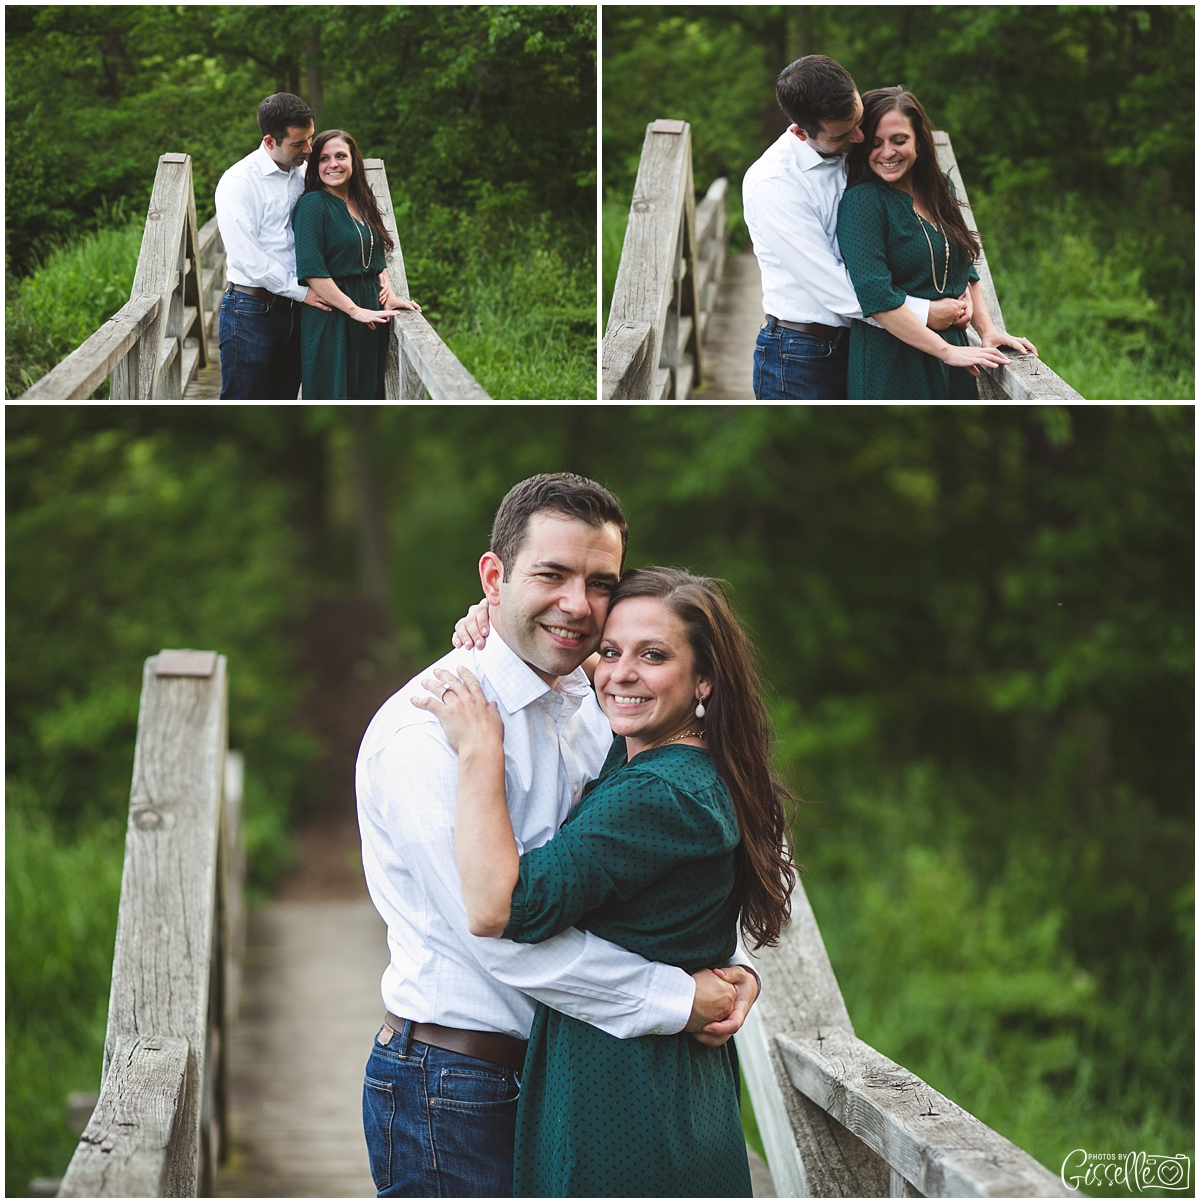 Morton-Arobretum-Engagement-Session-Photos-by-Gisselle009.jpg